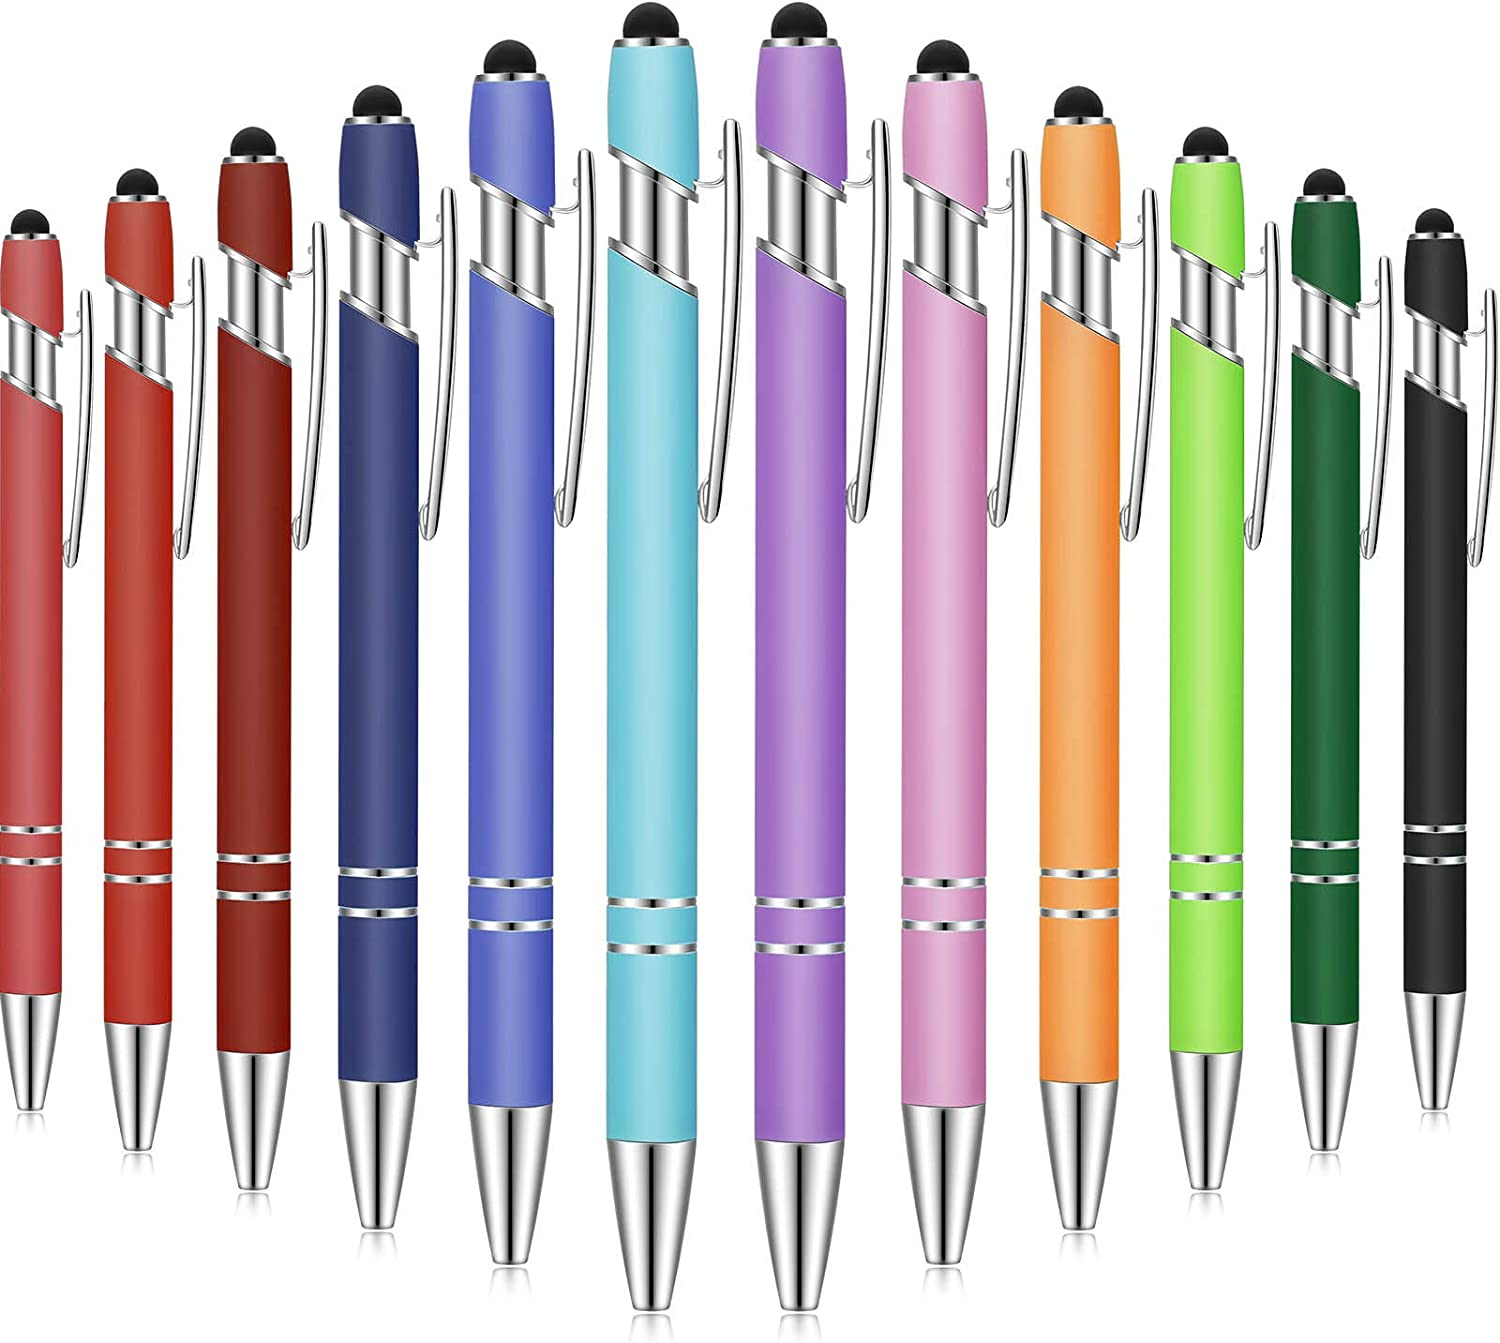 12 Pieces Ballpoint Pen with Stylus Tip, 1.0 mm Black Ink Metal Pen Stylus Pen for Touch Screens, 2 in 1 Stylus Ballpoint Pen : Office Products